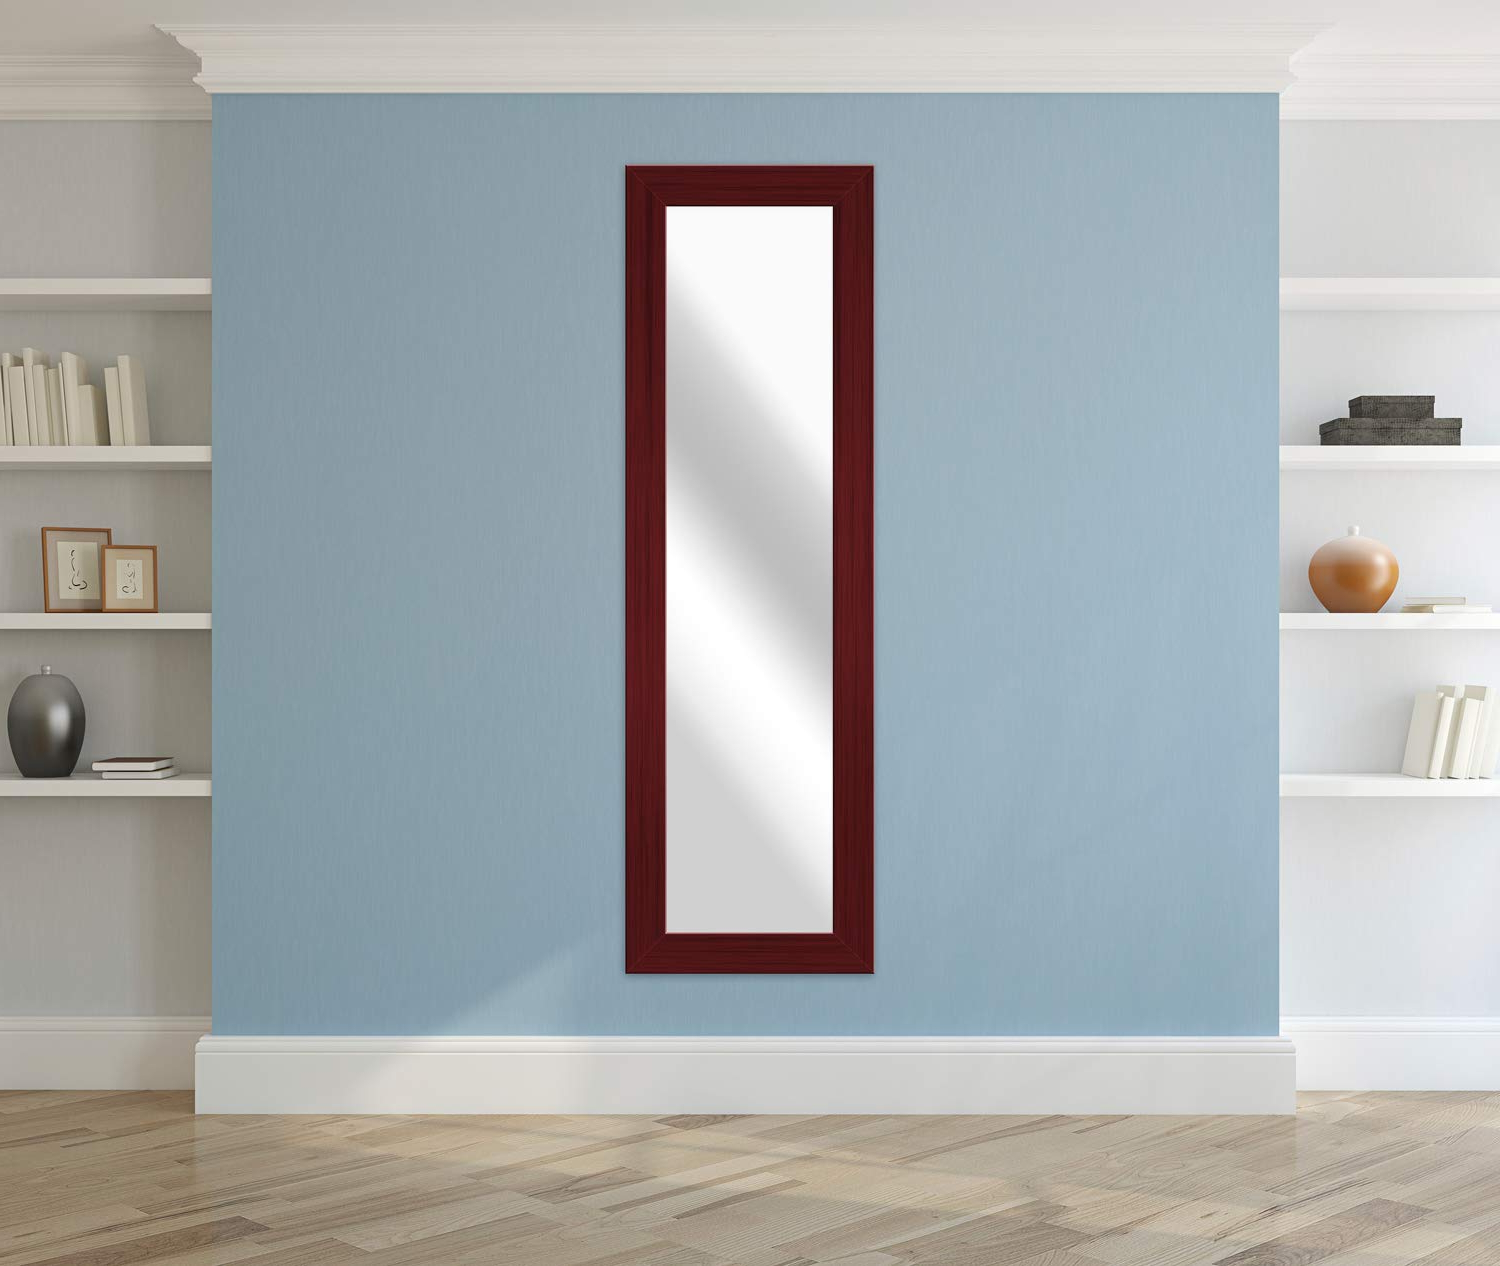 "Leaning Wall Mirrors With Regard To Most Up To Date Mirrotek Jumbo Wide Frame Over The Door Wall Mounted Or Floor Leaning Mirror 18"" X 66"", Cherry (View 10 of 20)"